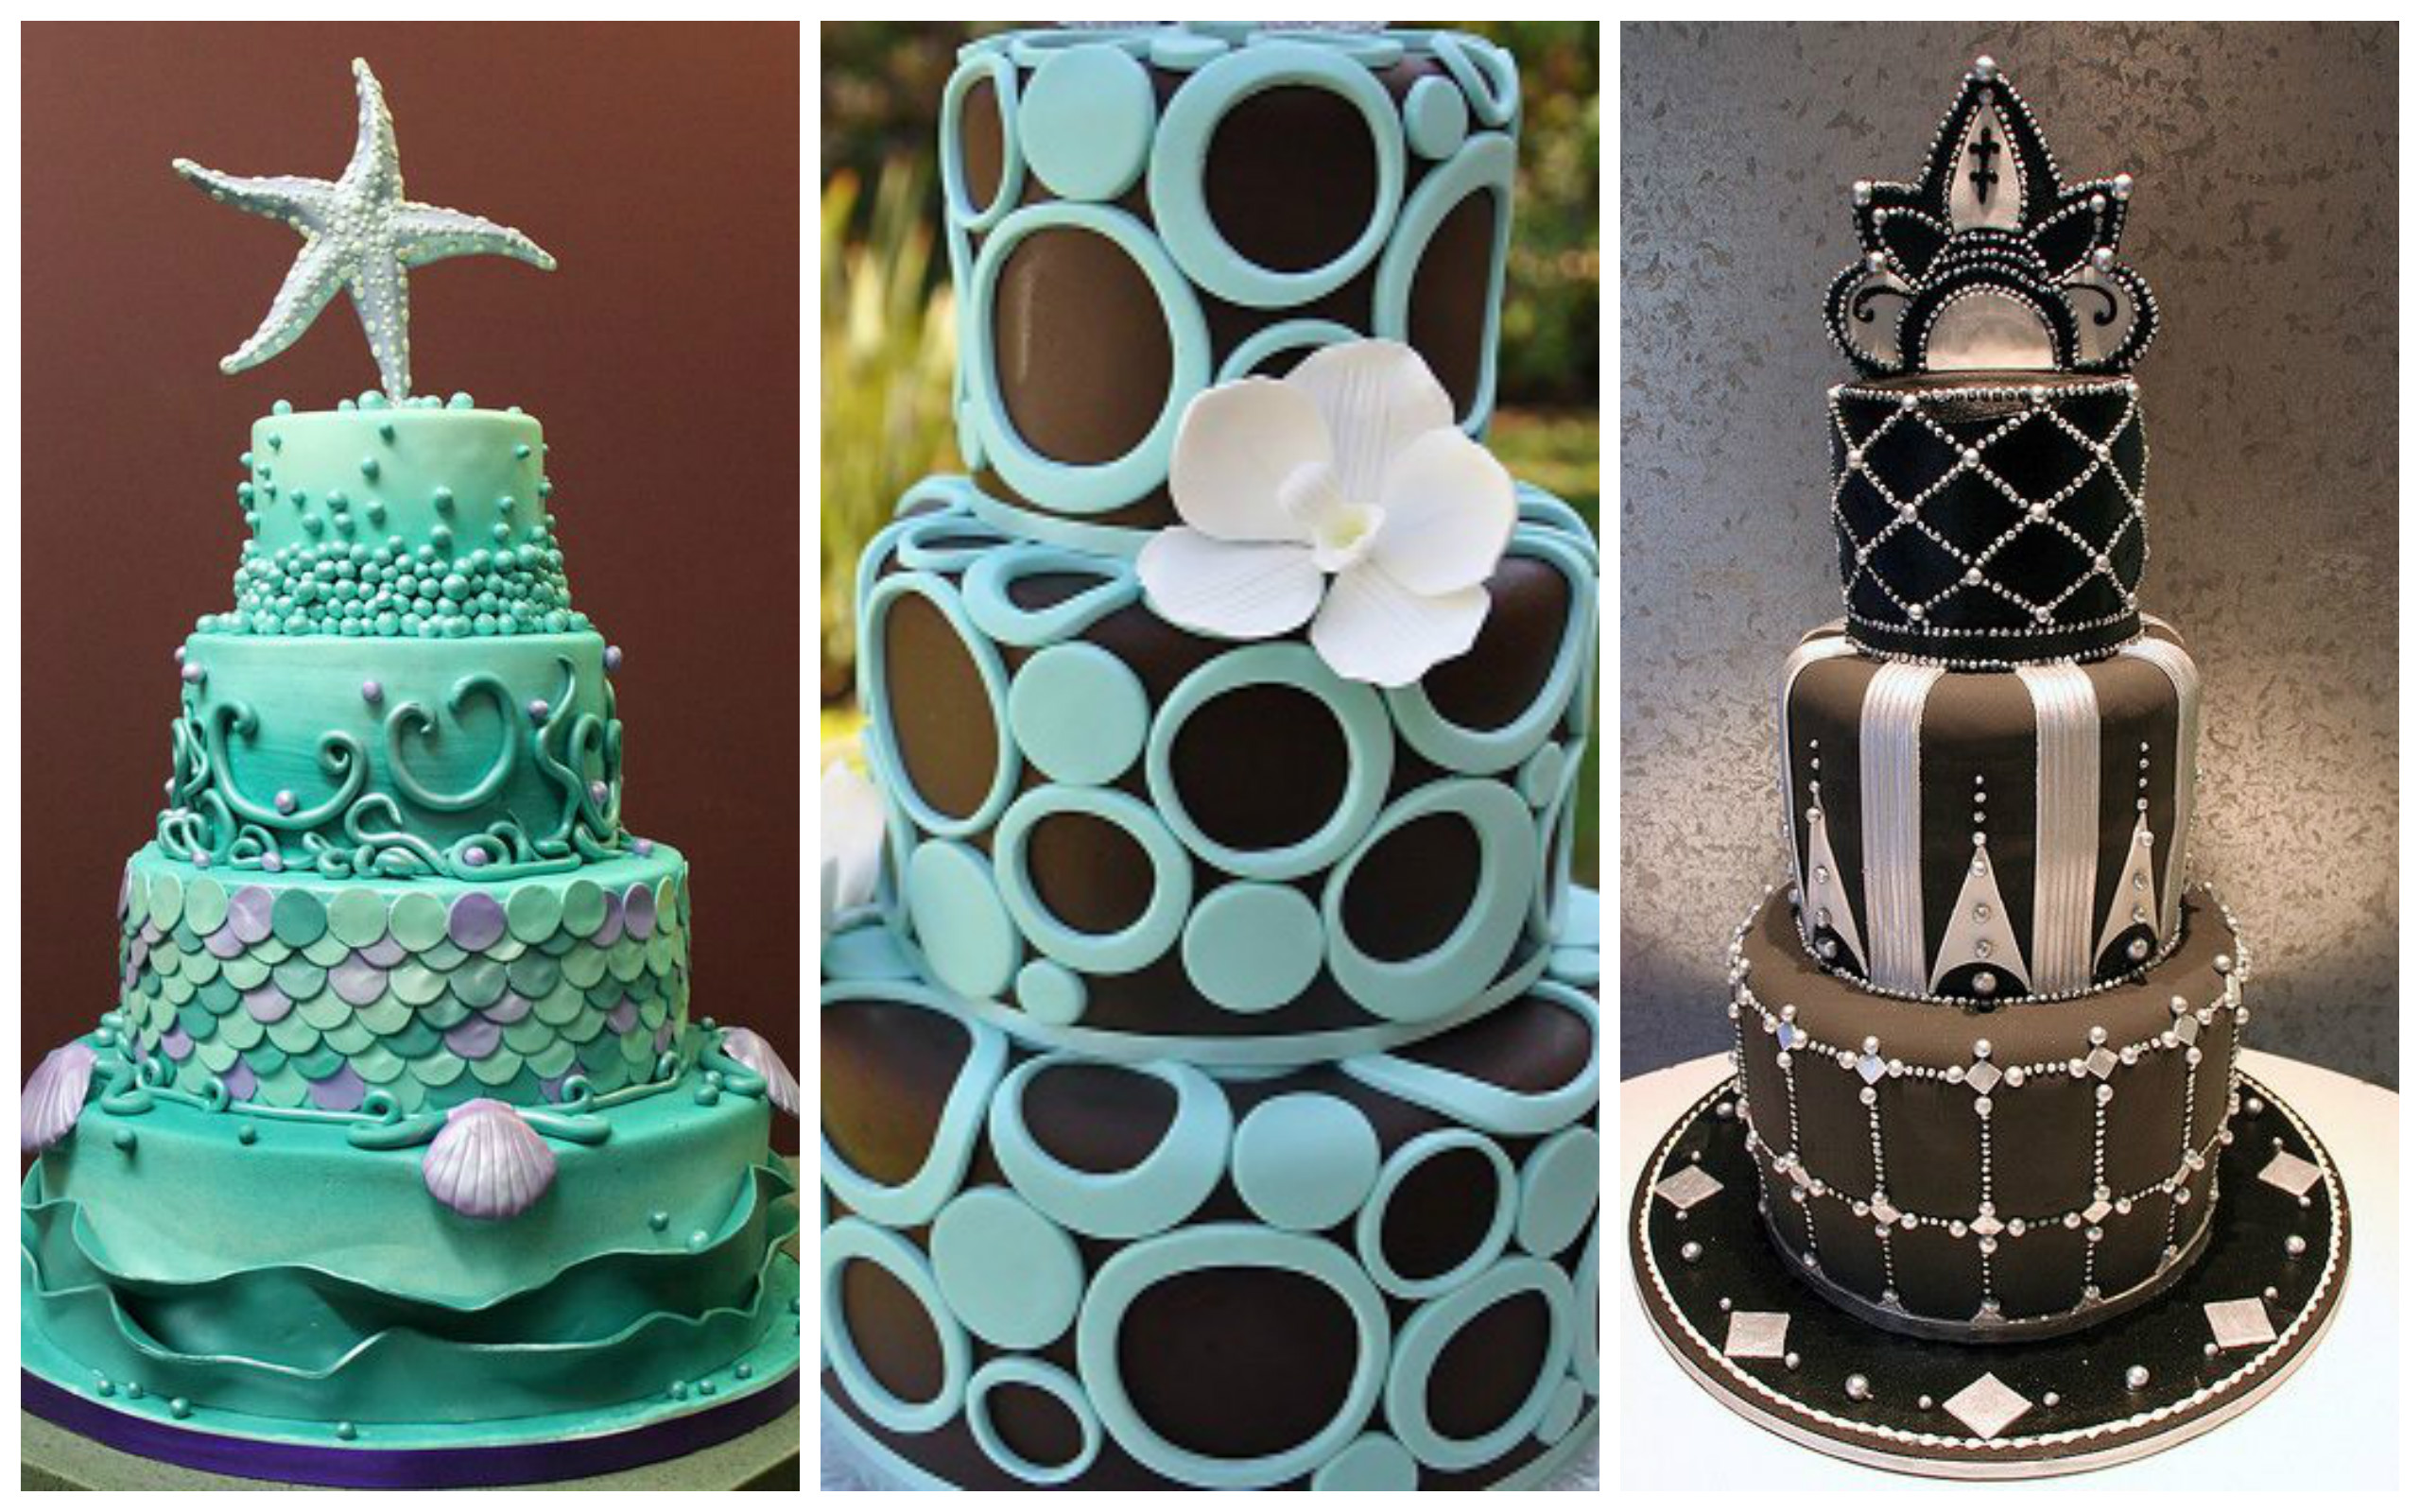 Amazing Cake Artist : Browse: World s Most Favorite Cakes from Amazing Cake ...